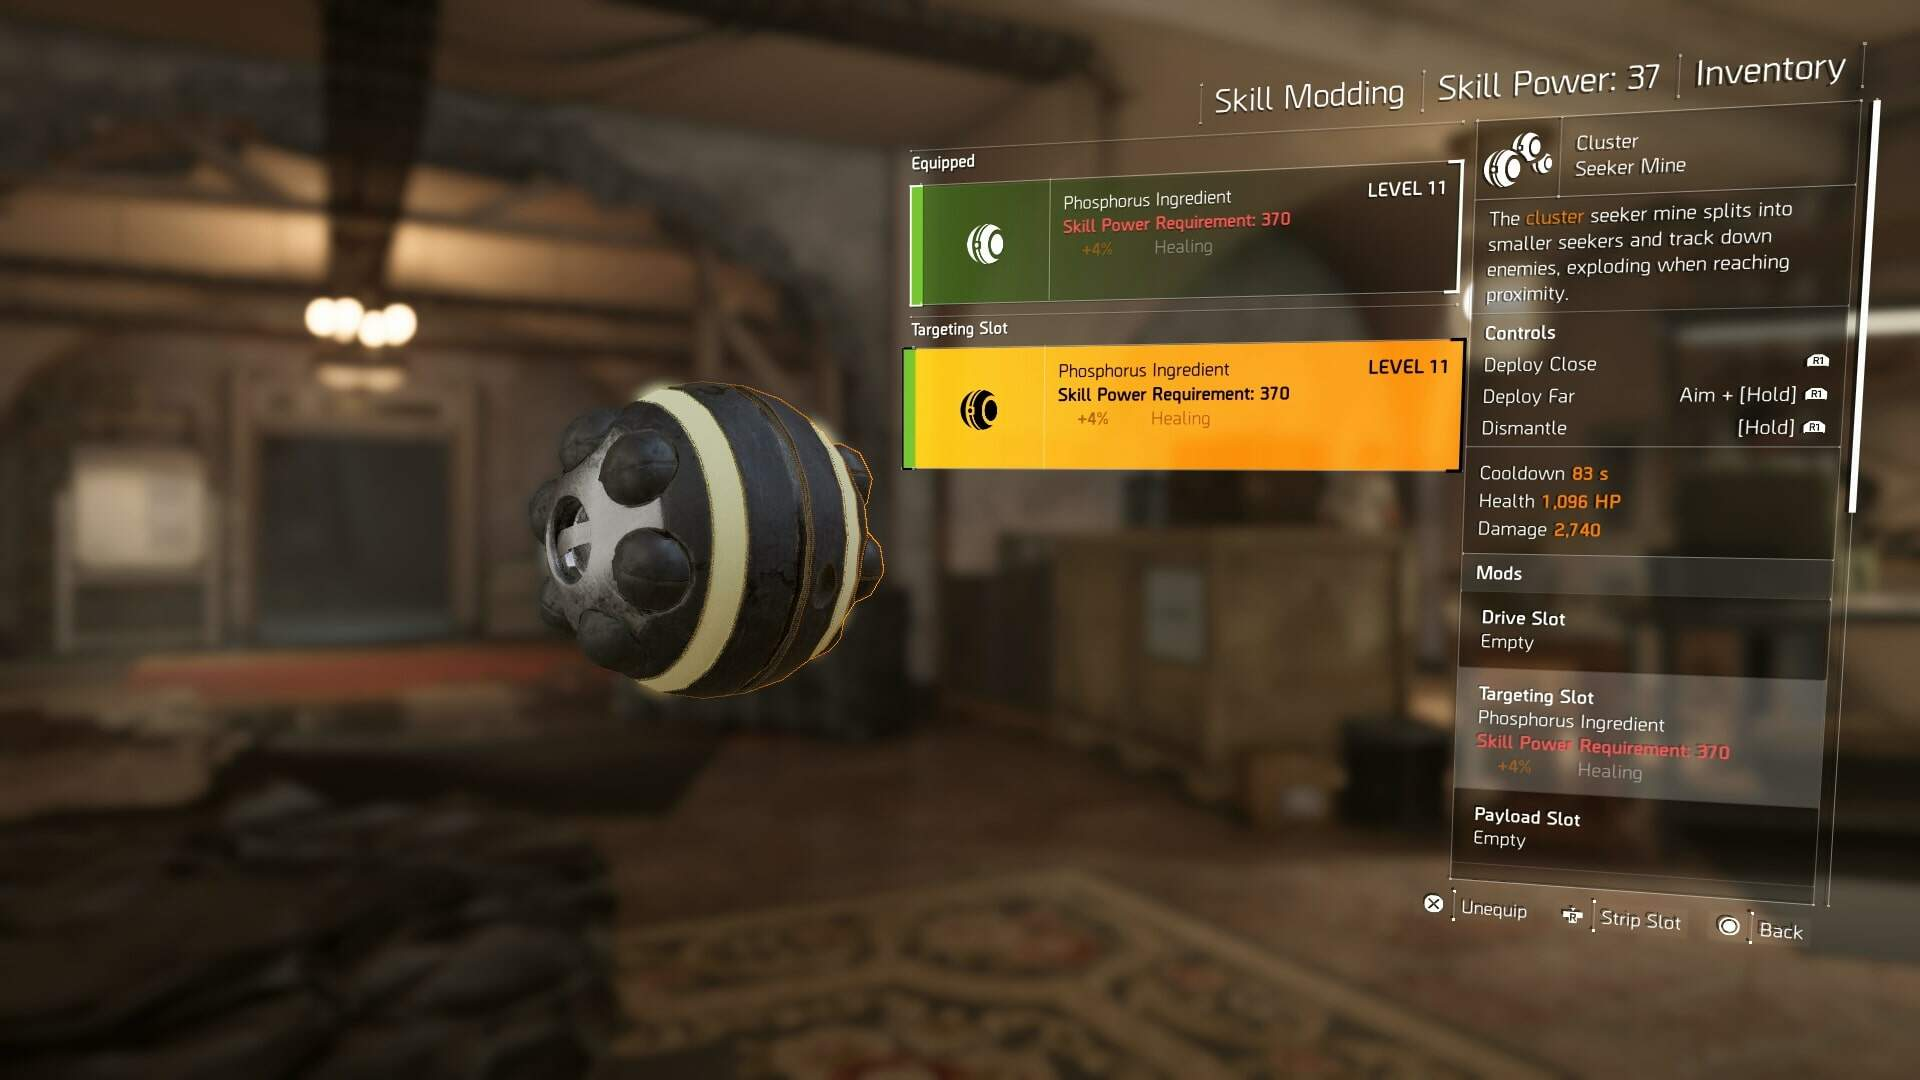 The Division 2 Aux Batteries - Where to Get Auxiliary Battery Mods and What Do They Do?